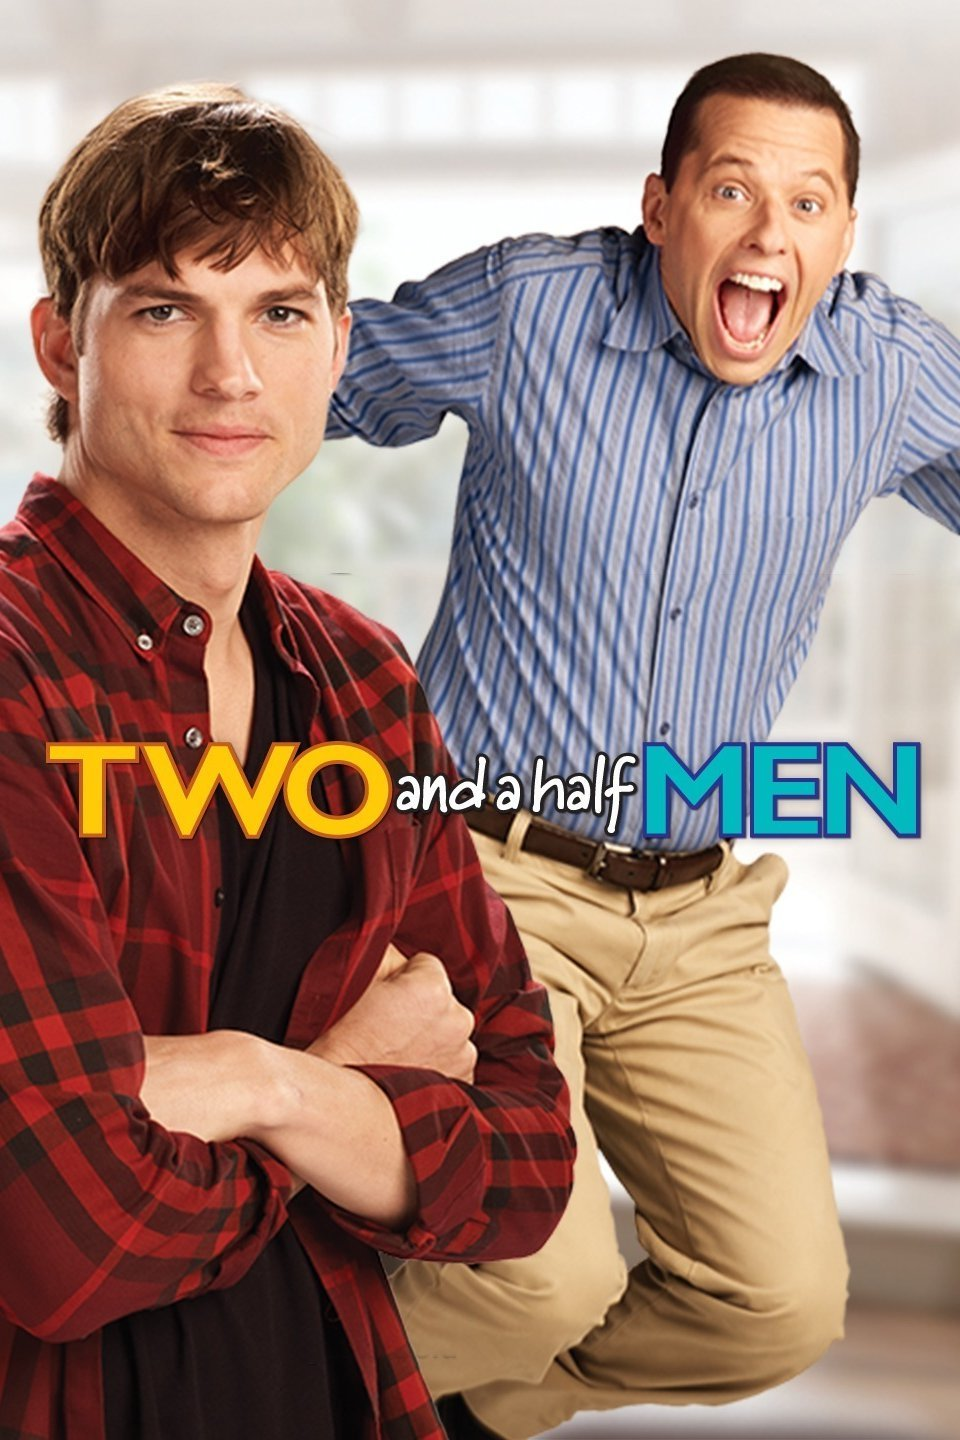 Two And A Half Men S06E23 ماي ايجي - 4helal.live